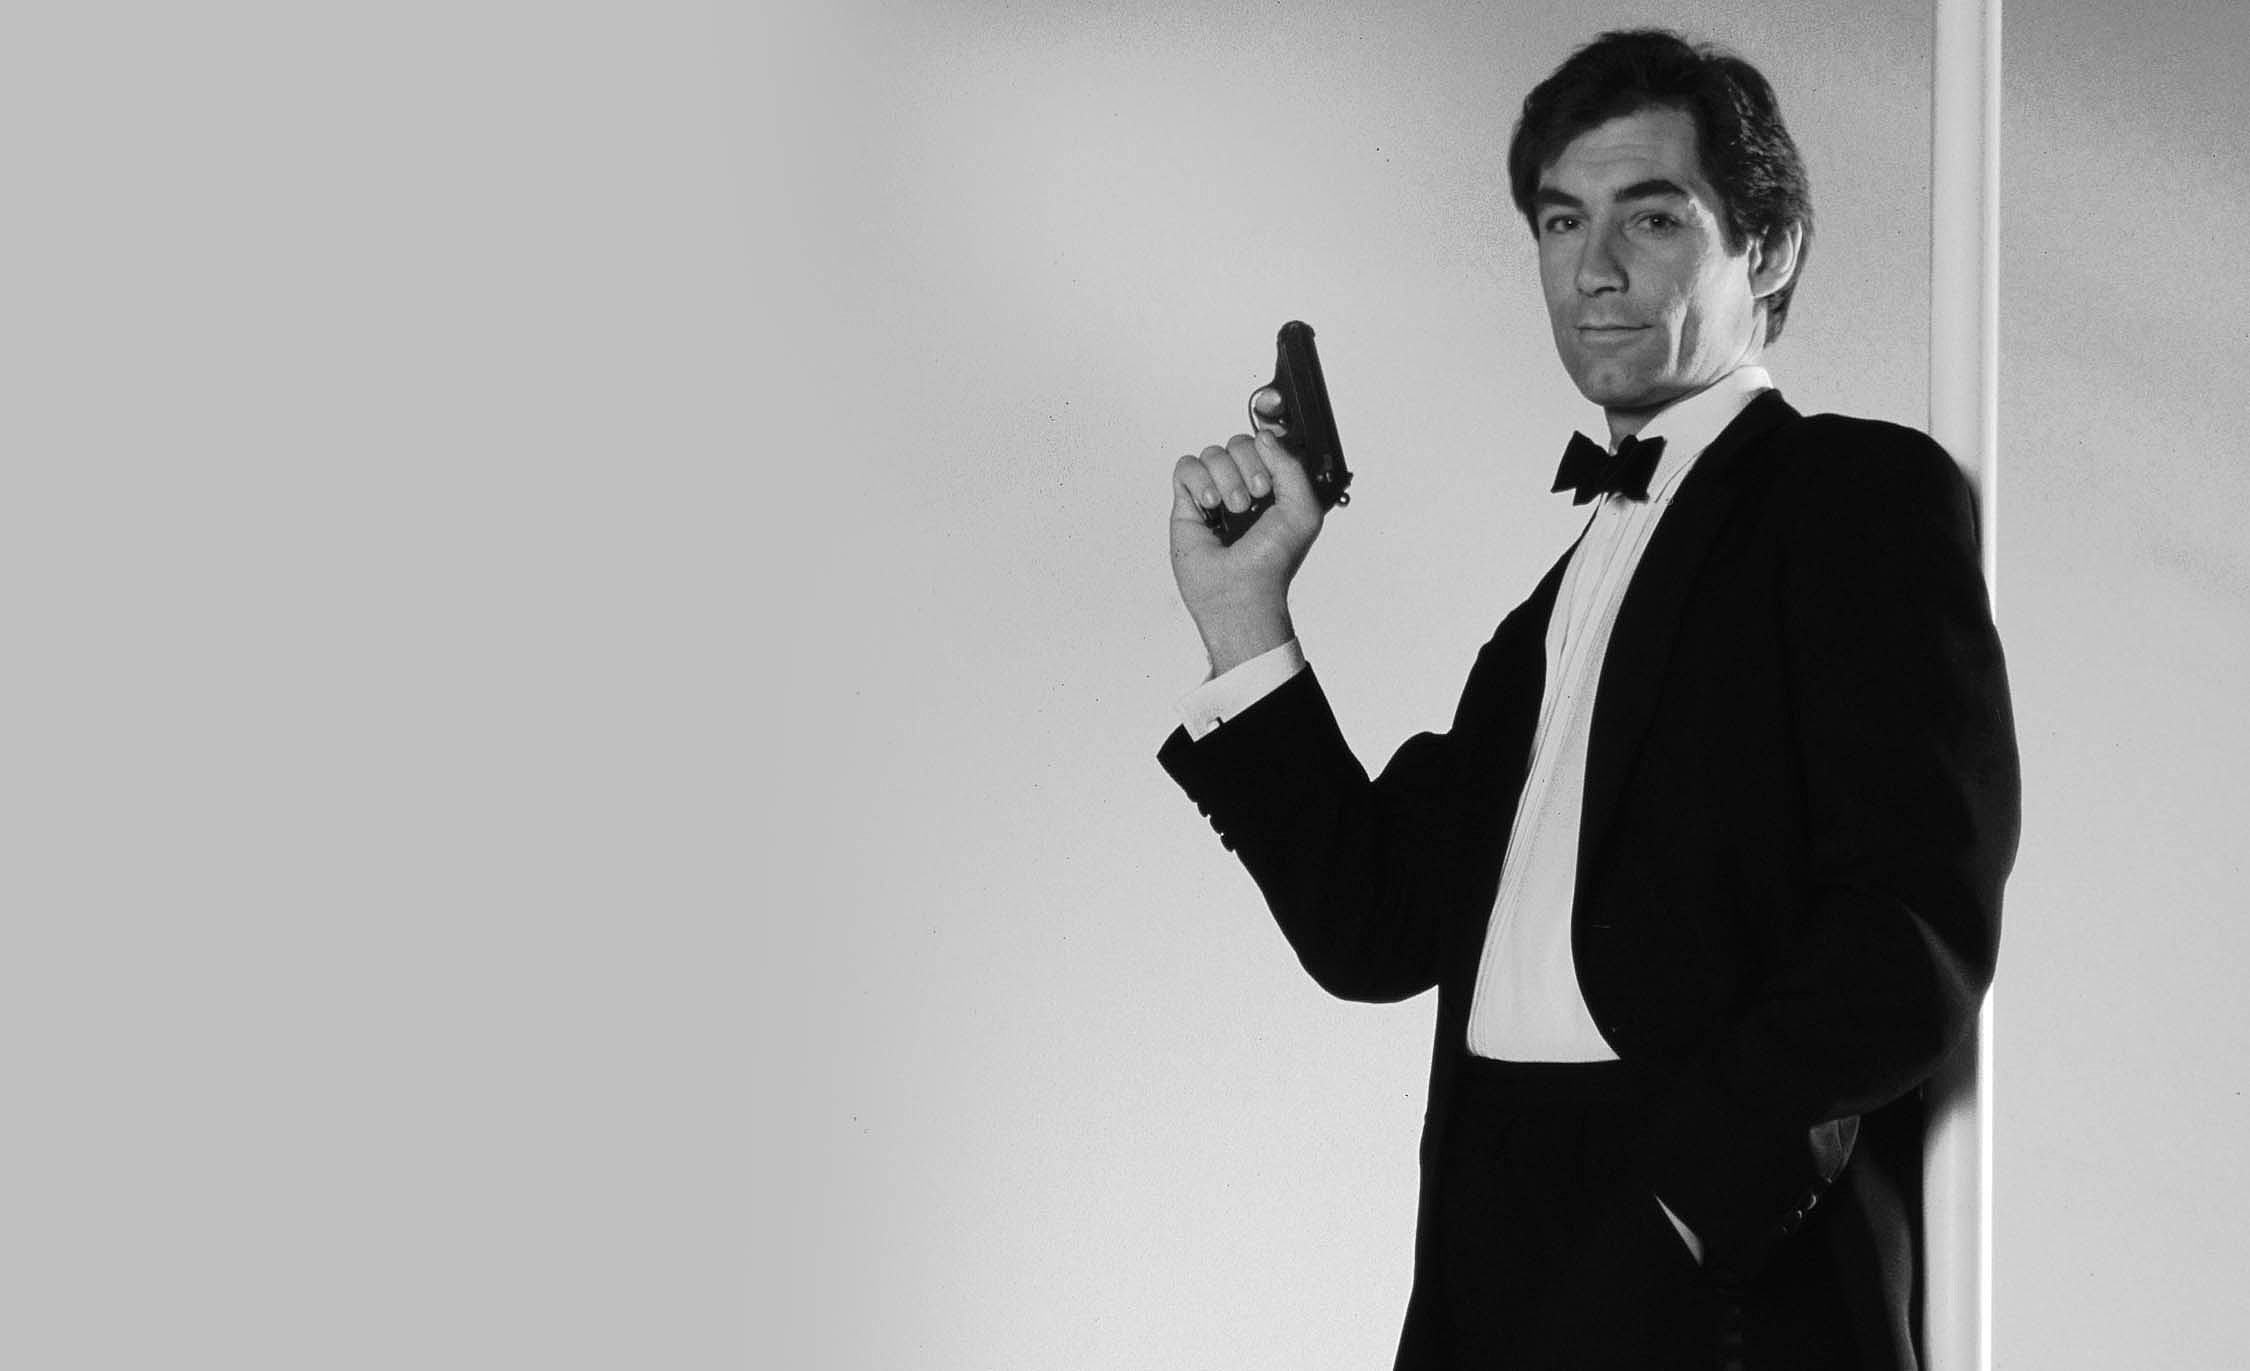 Timothy-Dalton-james-bond-BW